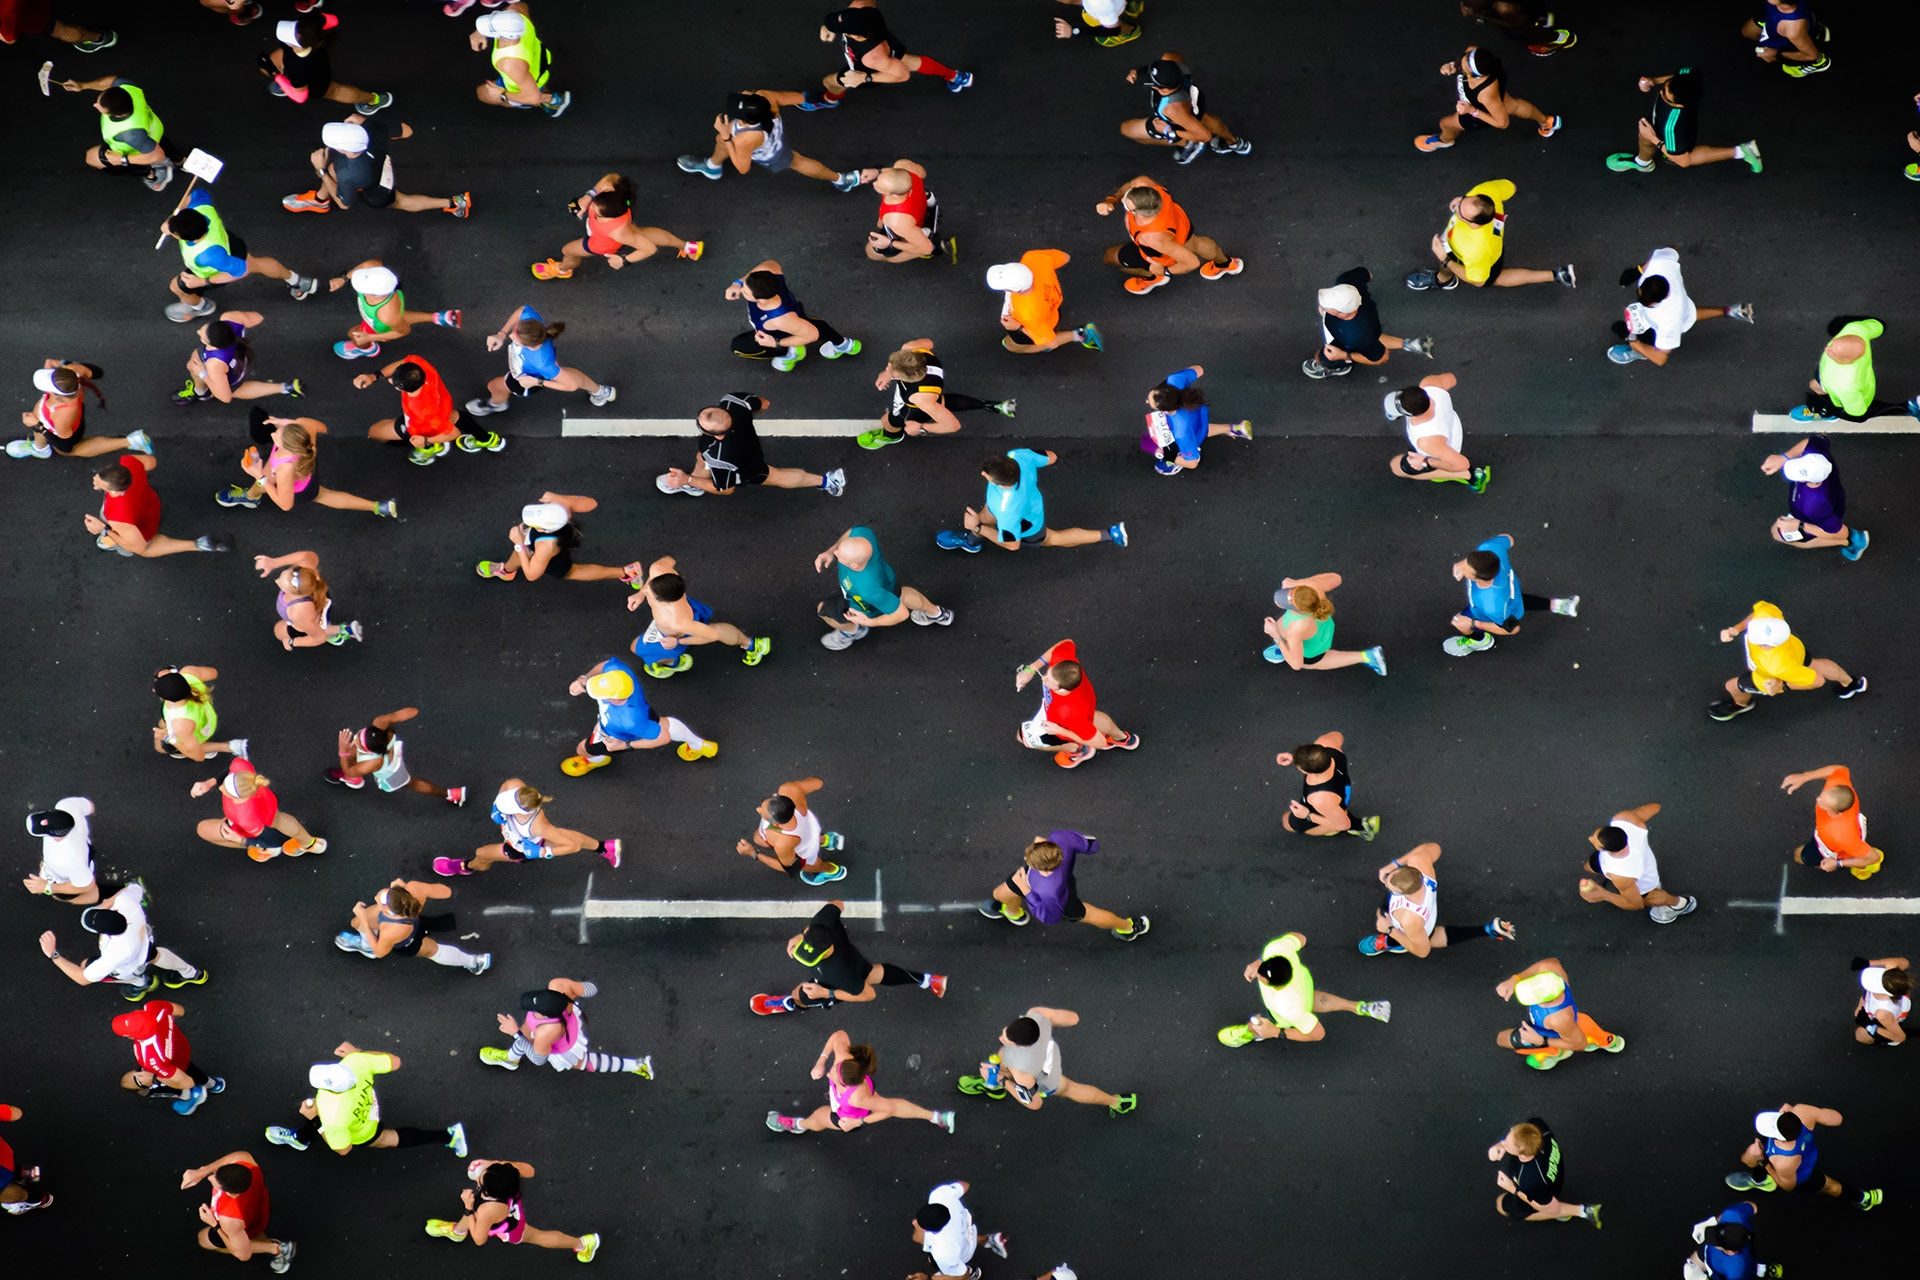 One Of Australia's Leading Distance Runners Provides Your Definitive Guide To Marathon Training